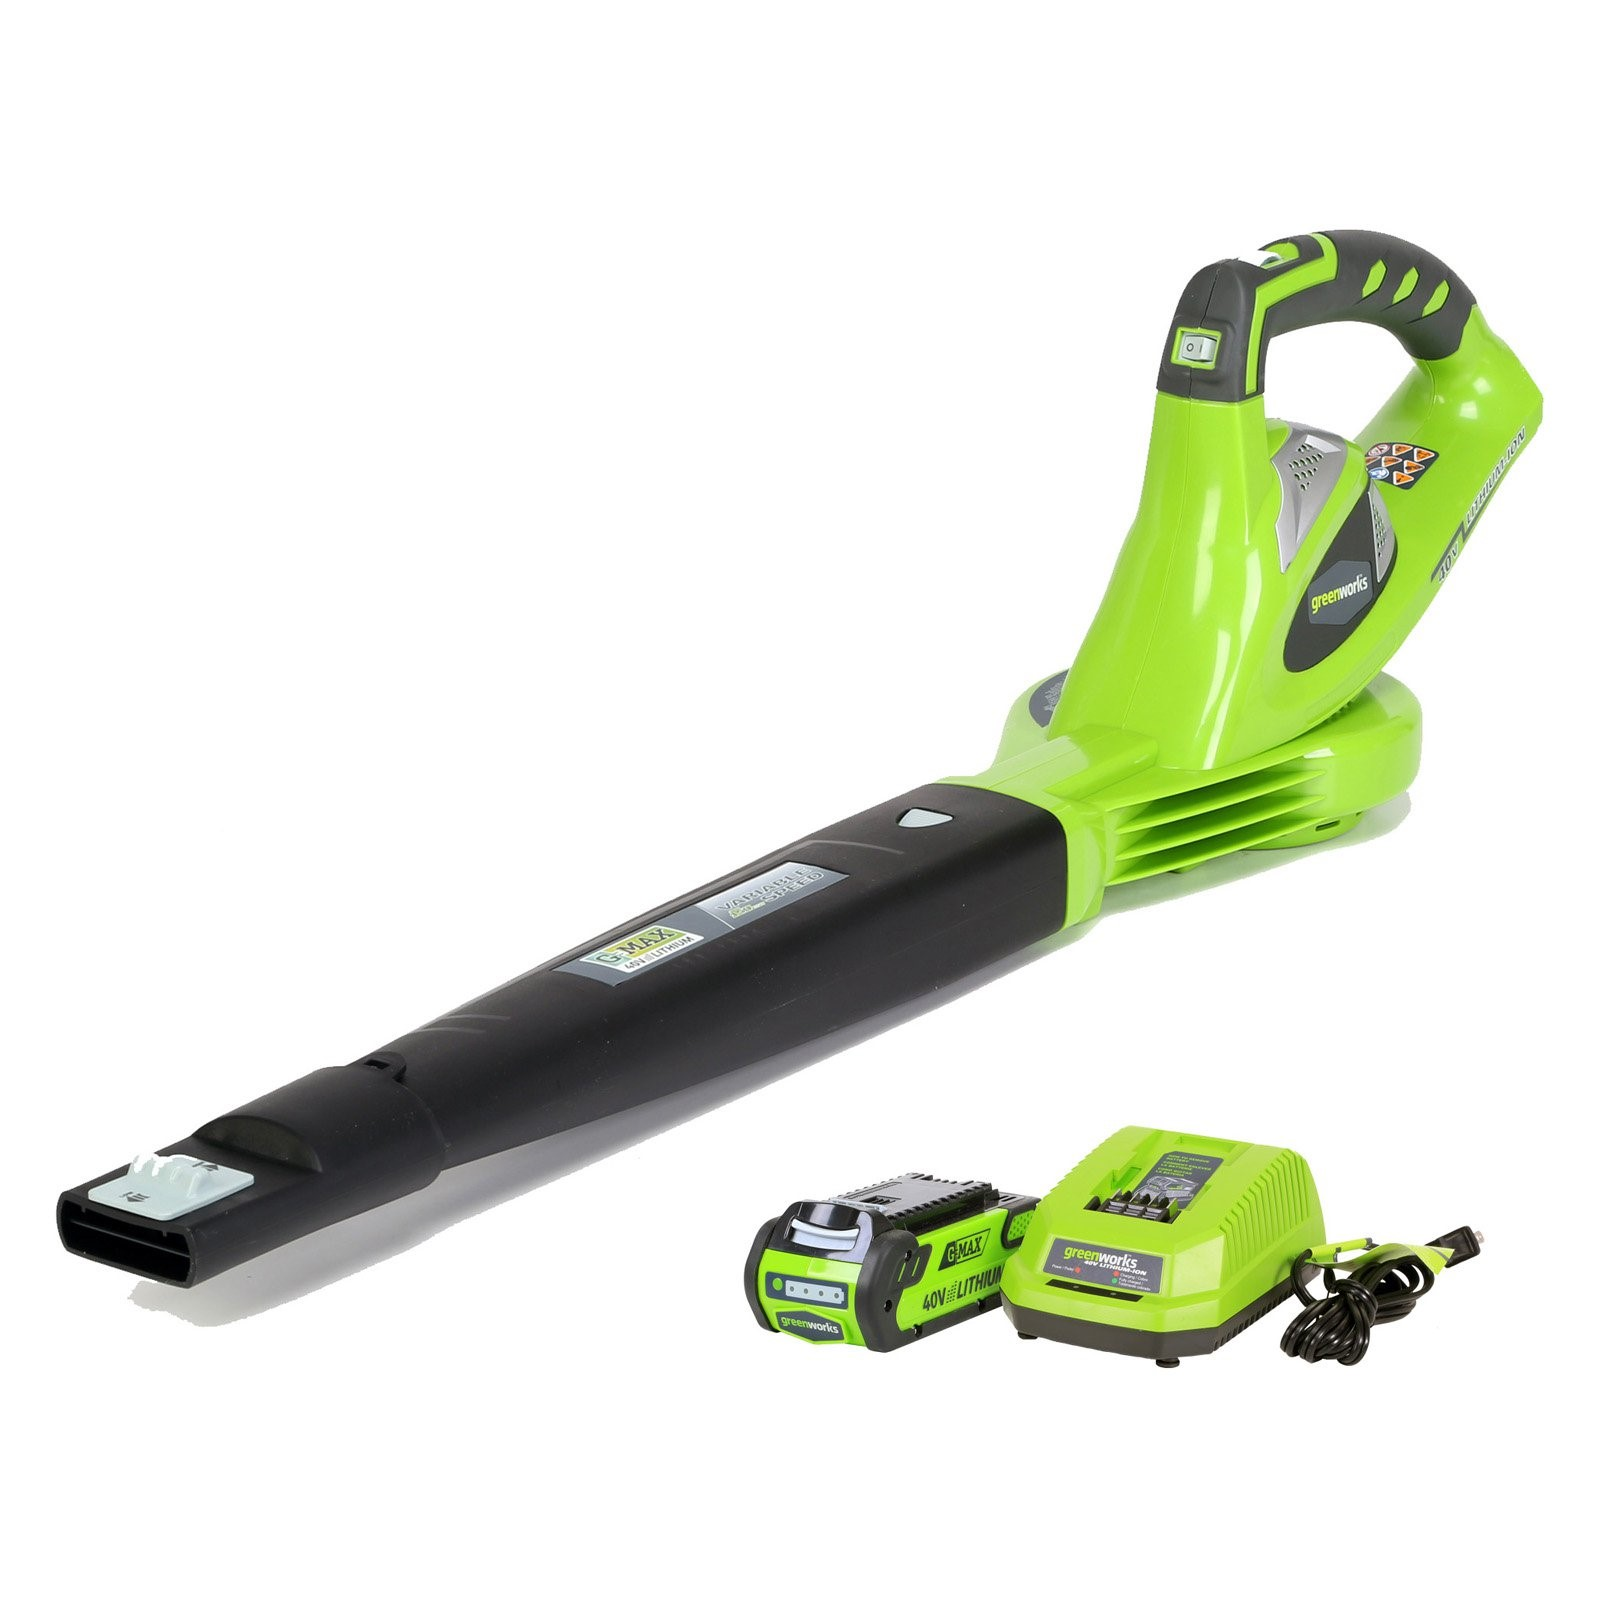 Greenworks 40V 150 MPH Variable Speed Cordless Blower, 2.0 AH Battery Included 24252 by Sunrise Global Marketing, LLC